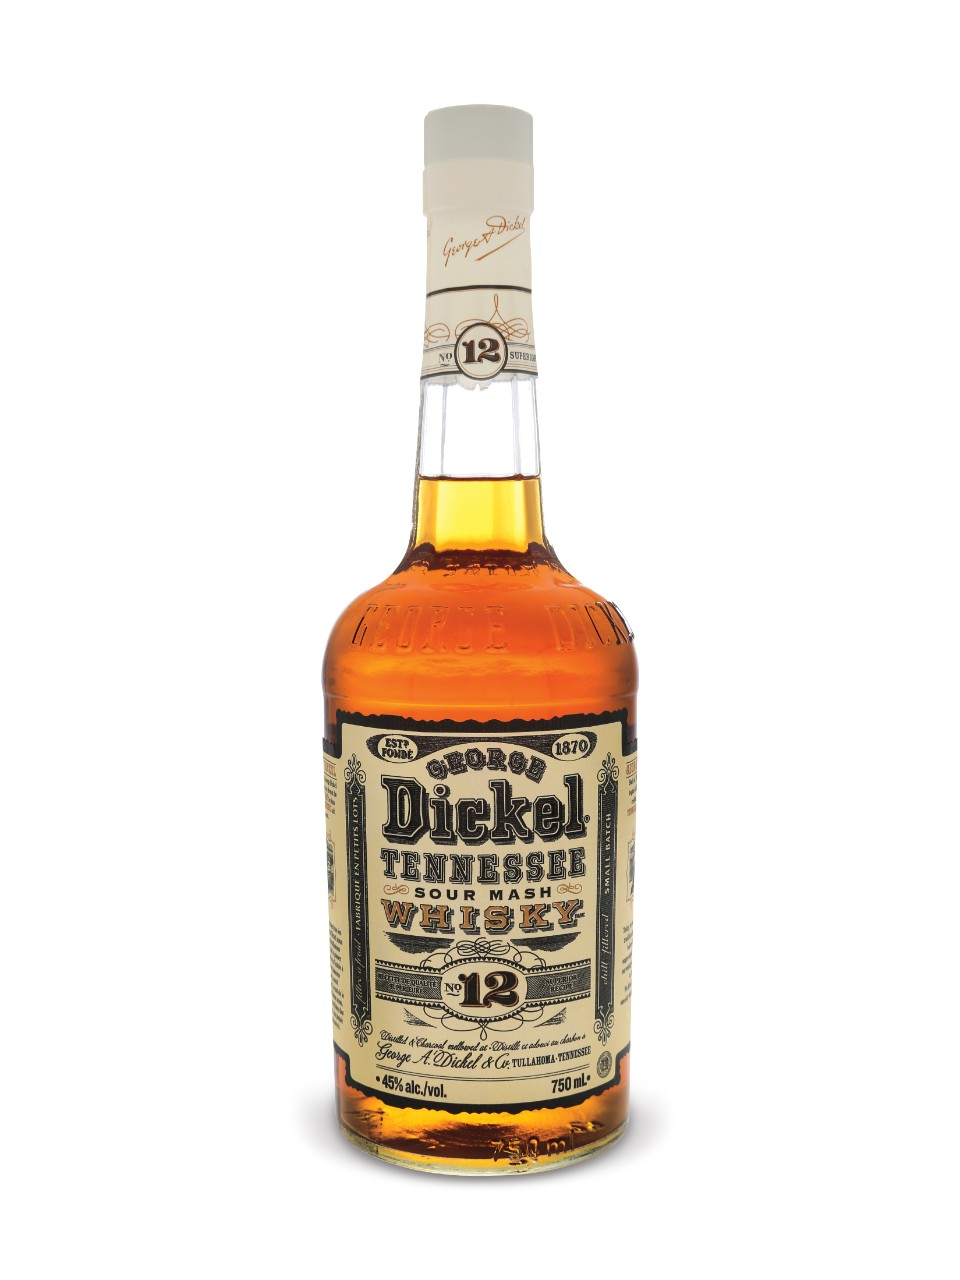 7. Tennessee Whiskey – George Dickel Superior No. 12